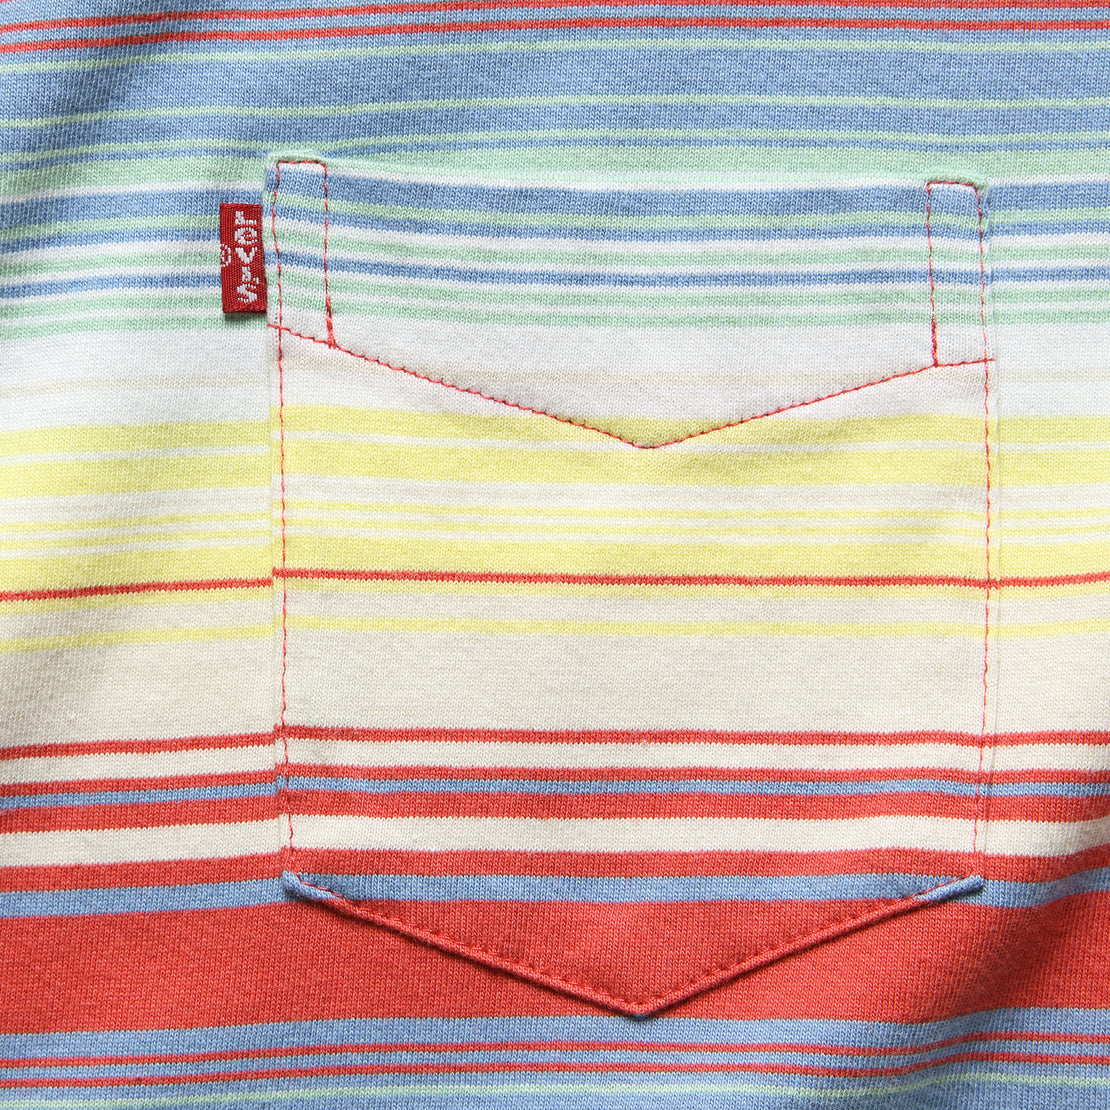 Sunset Pocket Tee - Fiesta Stripe